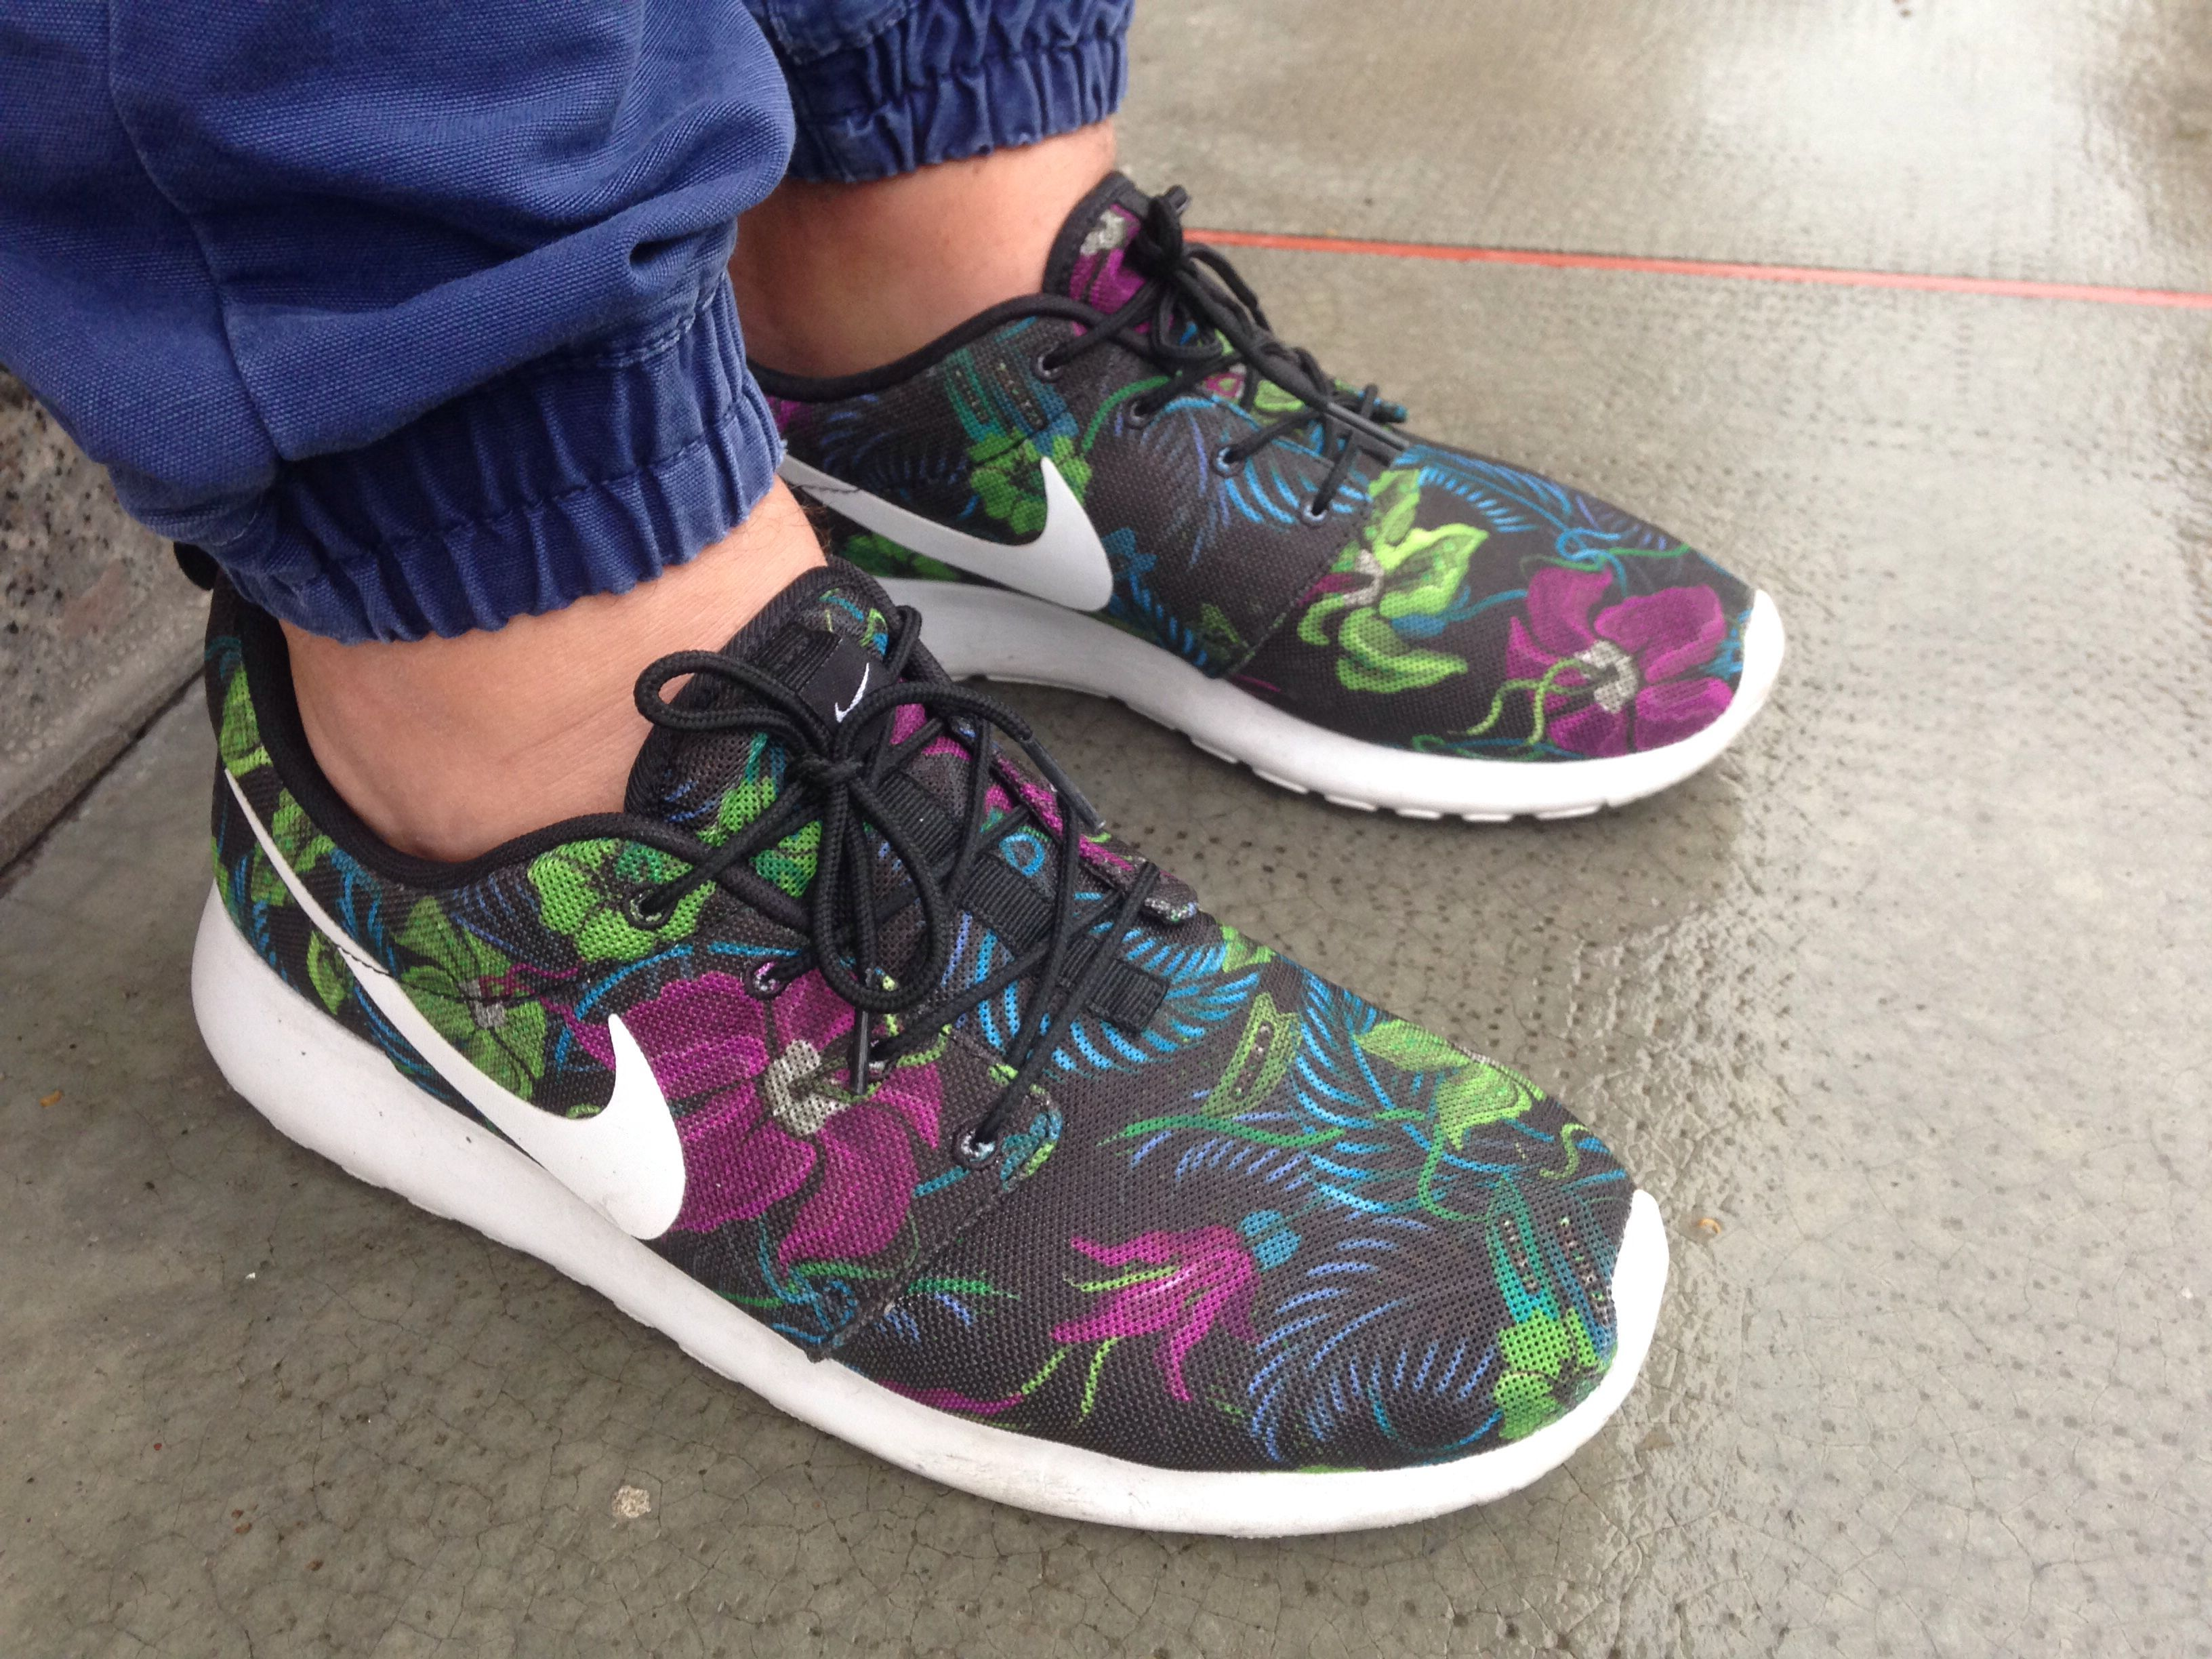 premium selection 3b1e1 108b7 Nike roshe run flower Only from Foot locker | foot friends ...